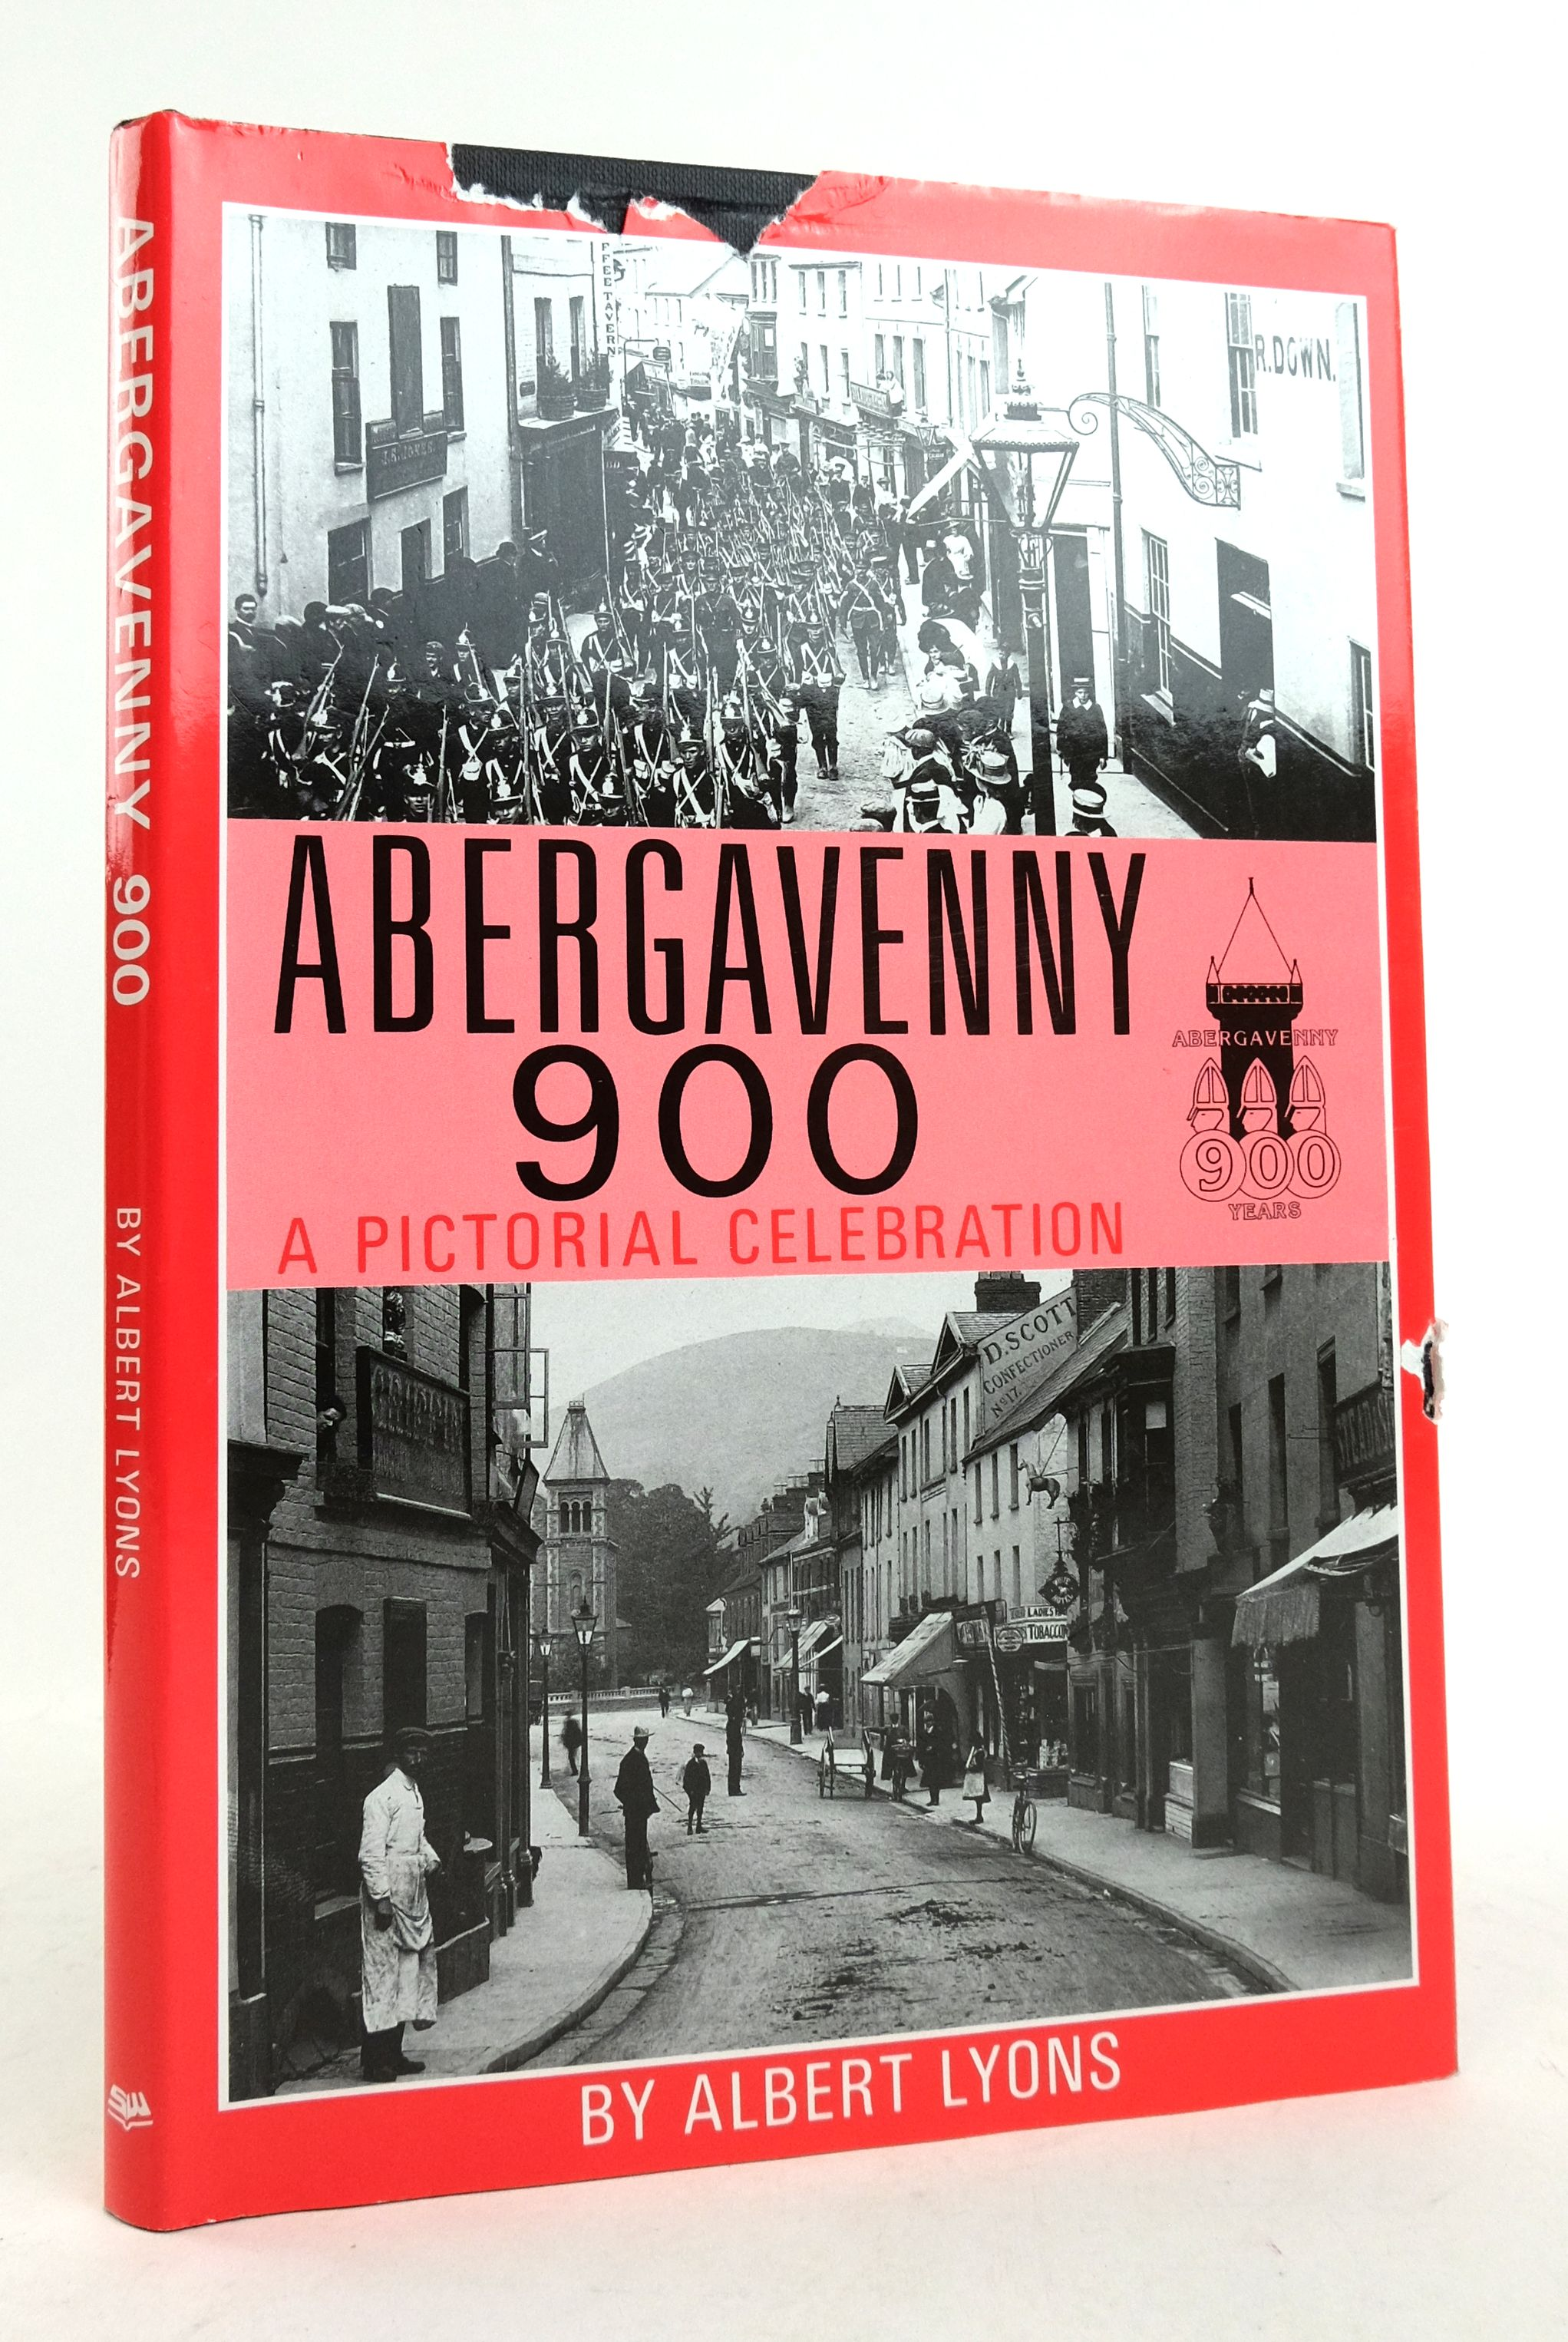 Photo of ABERGAVENNY 900: A PICTORIAL CELEBRATION written by Lyons, Albert published by Stewart Williams (STOCK CODE: 1822471)  for sale by Stella & Rose's Books